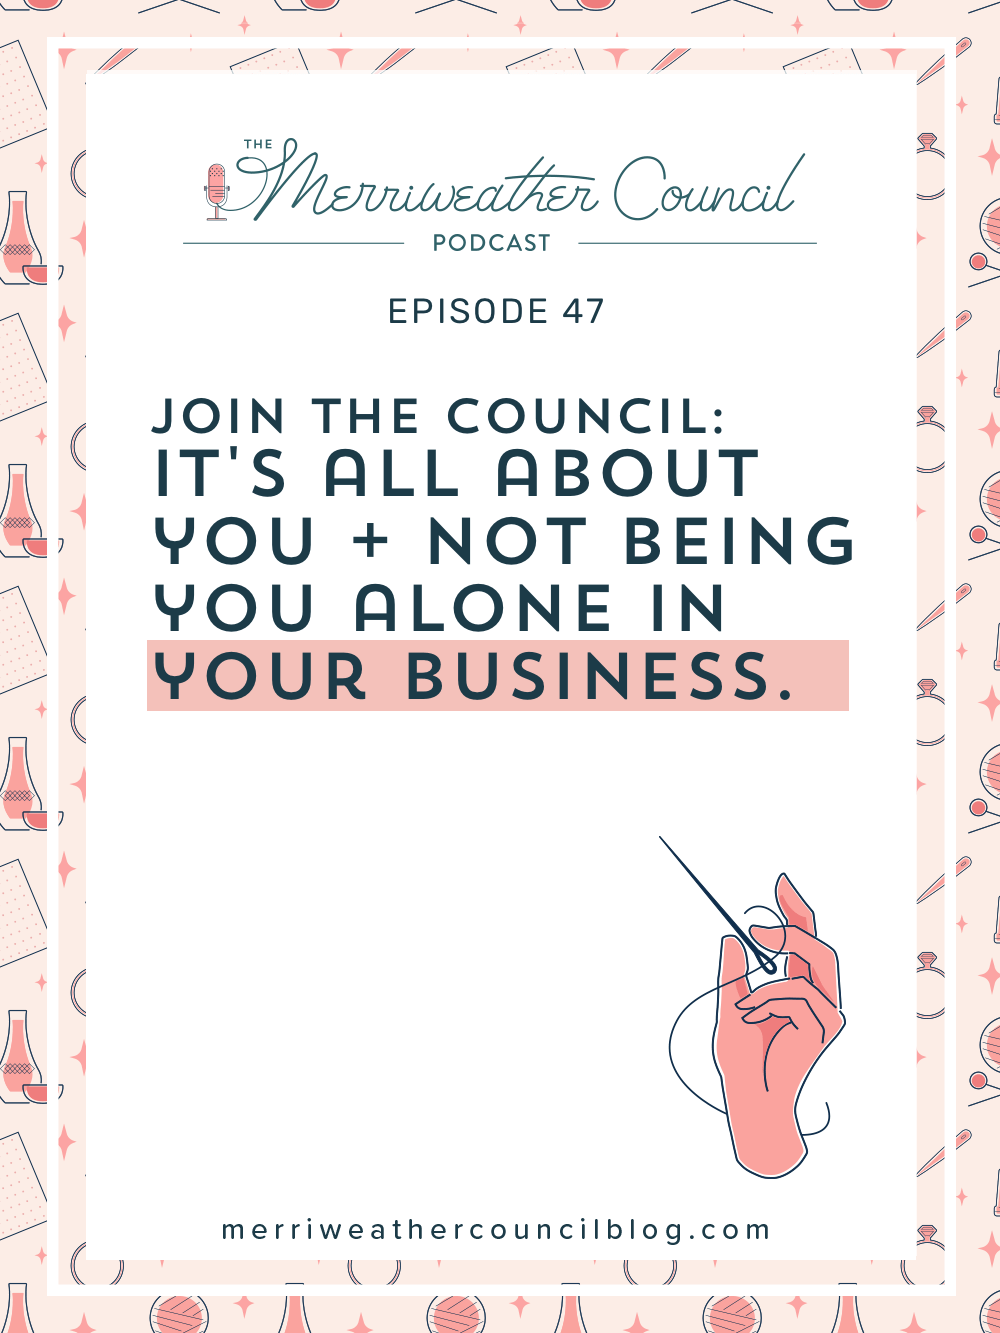 You are most likely a one-person show. Your business is relying on you. As a soloprenuer,it all comes down to you. But YOU don't have to be you alone in your business. Let me explain what that means in this episode. | The Merriweather Council